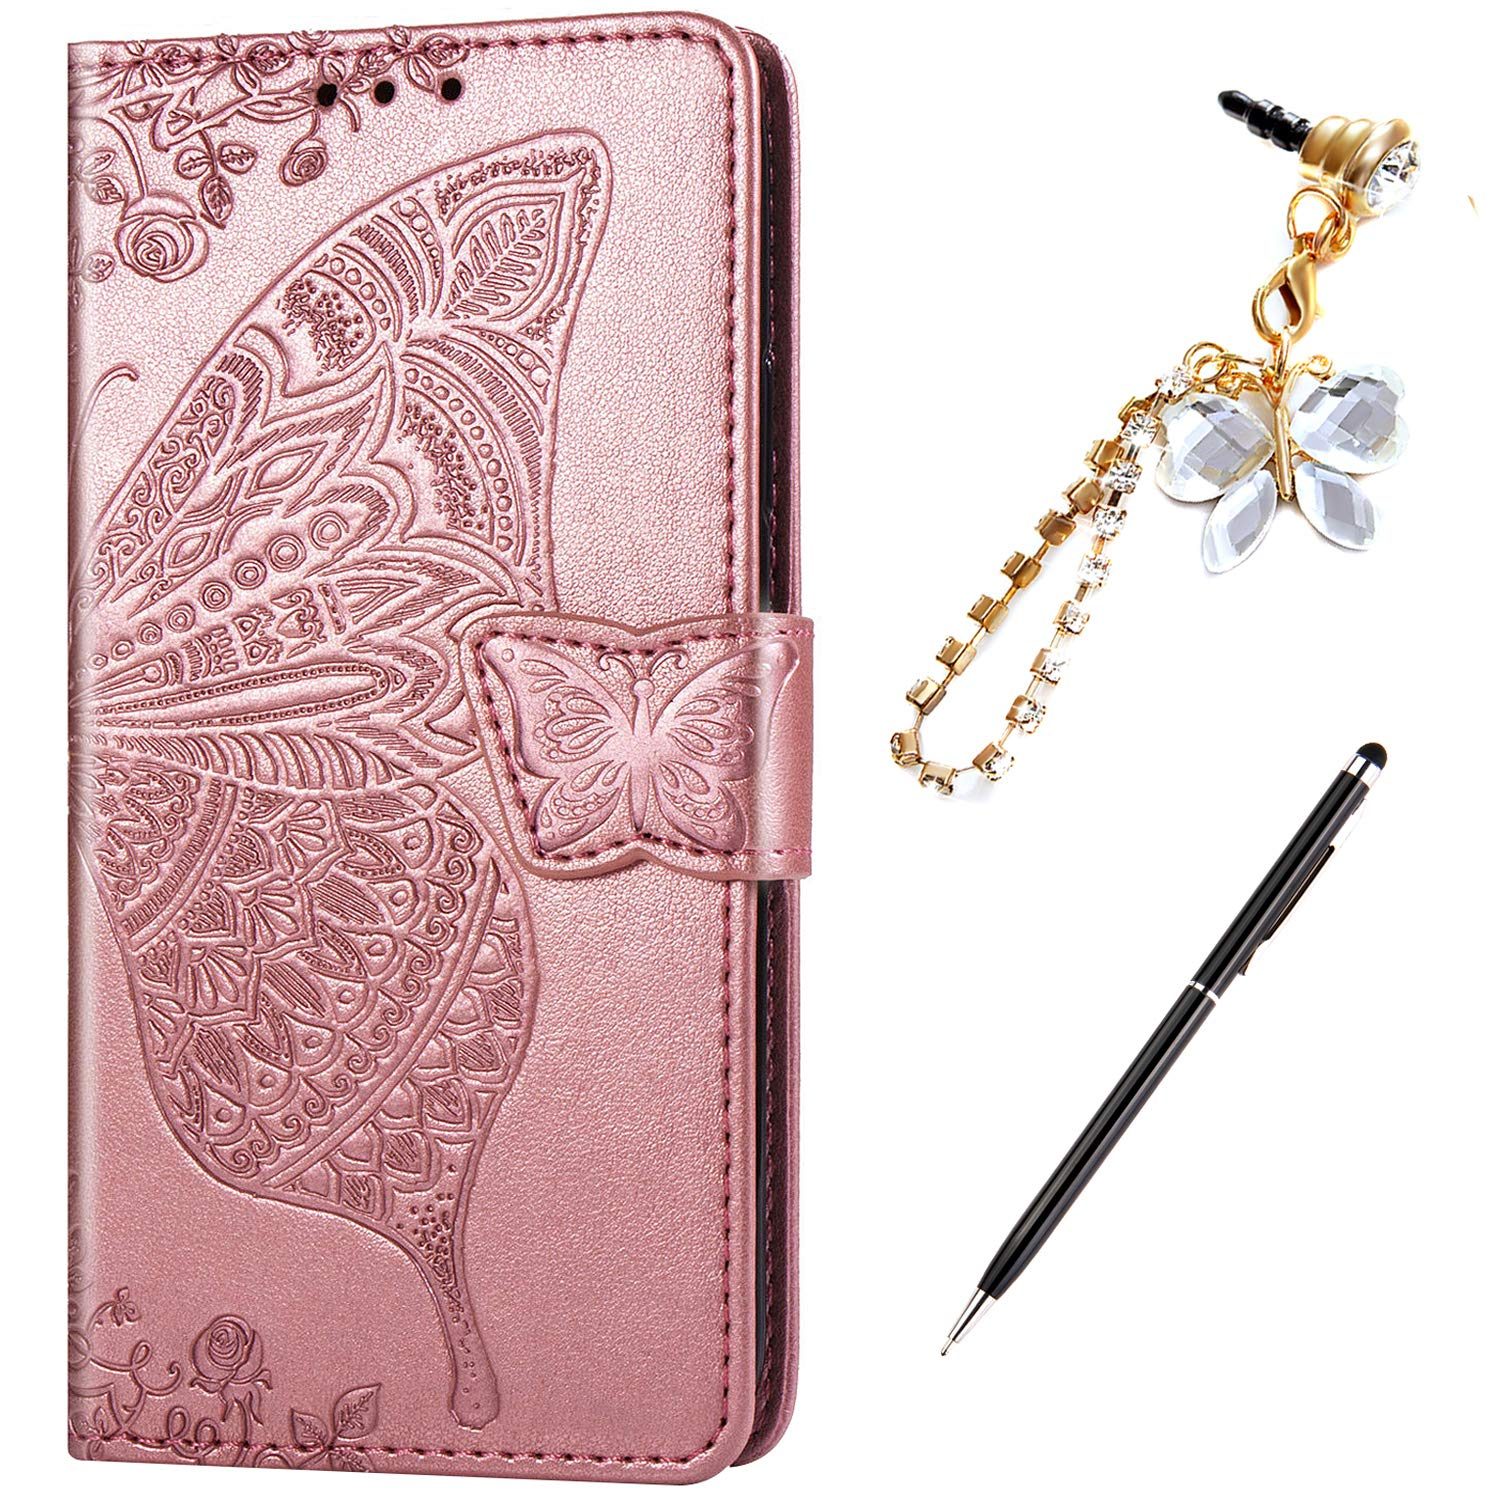 ikasus Case for Galaxy S10 Cover,Embossing Mandala Butterfly Rose Vine Flip Folio Wallet Case PU Leather Stand Card Slots Protective Case Cover + Dust Plug Stylus for Galaxy S10 Wallet Case,Rose Gold by ikasus